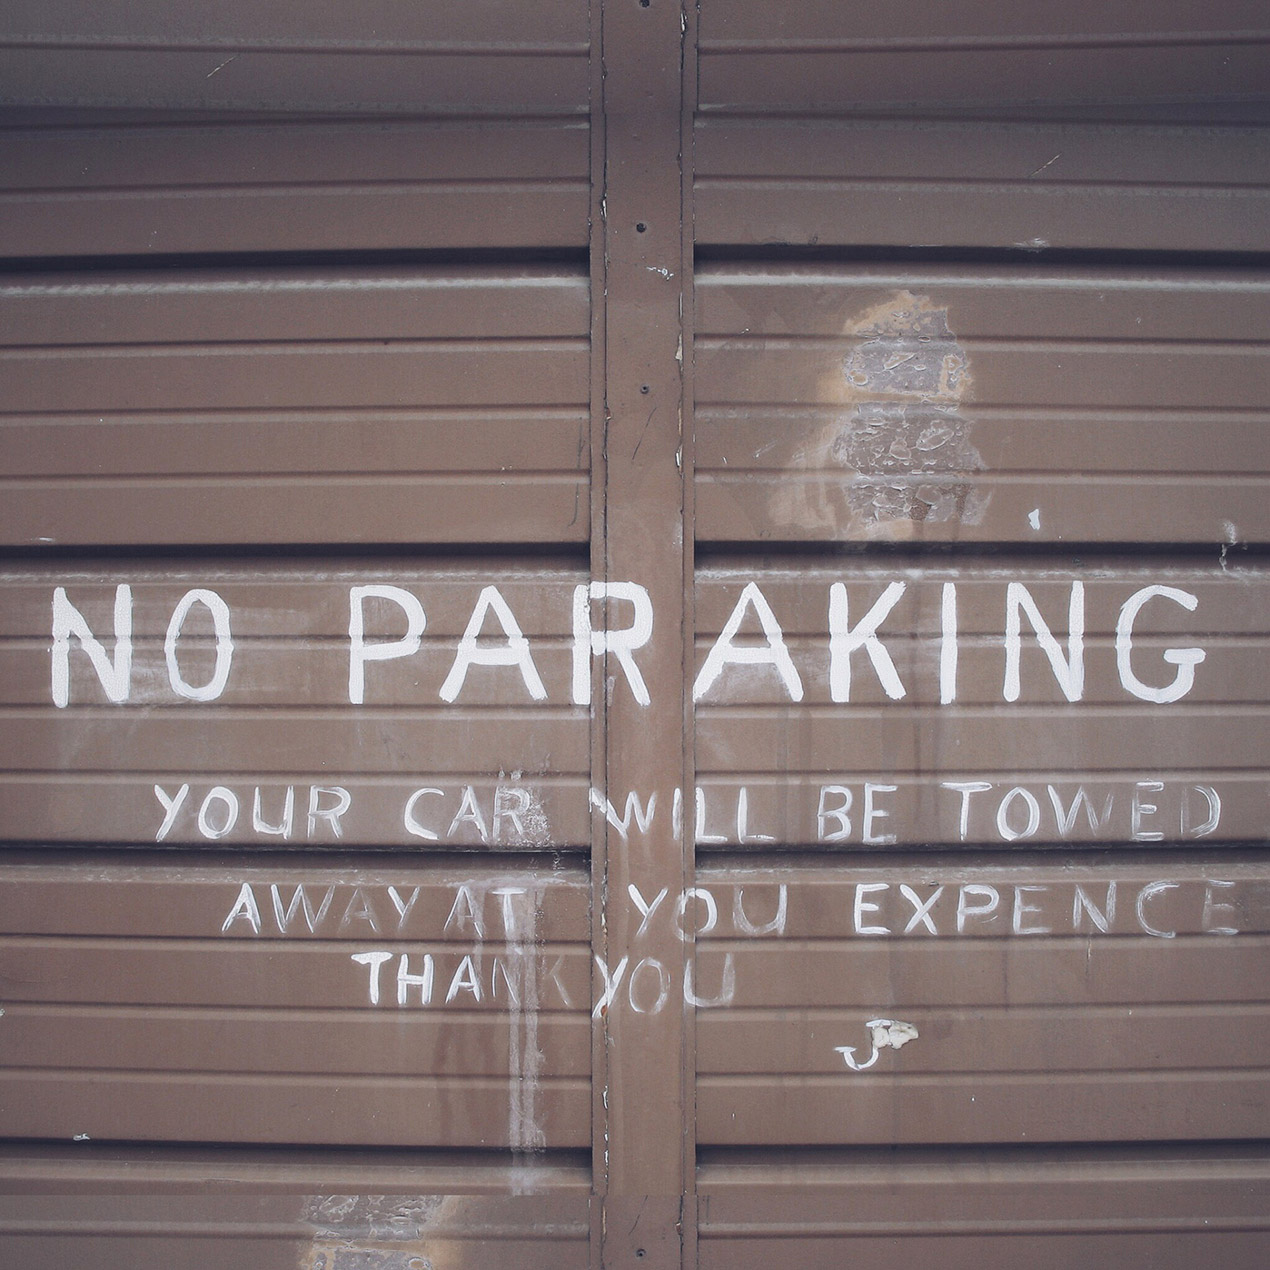 garage door with no parking spray painted in white